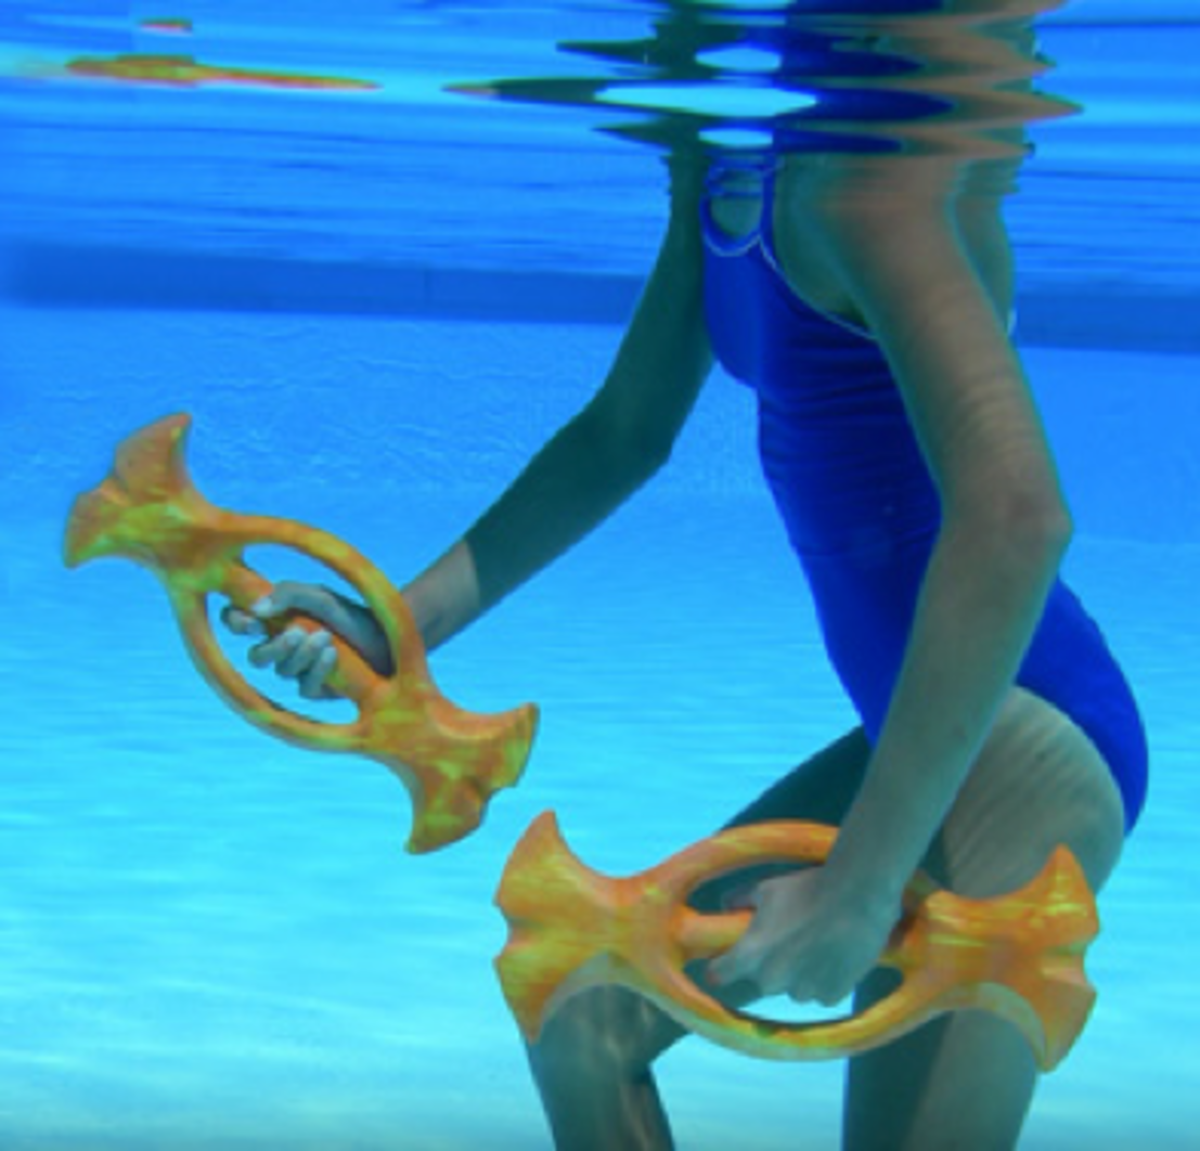 Ergo Bells in use - under water photo showing the aquatic barbell use in the water by a female in a blue one piece swim suit